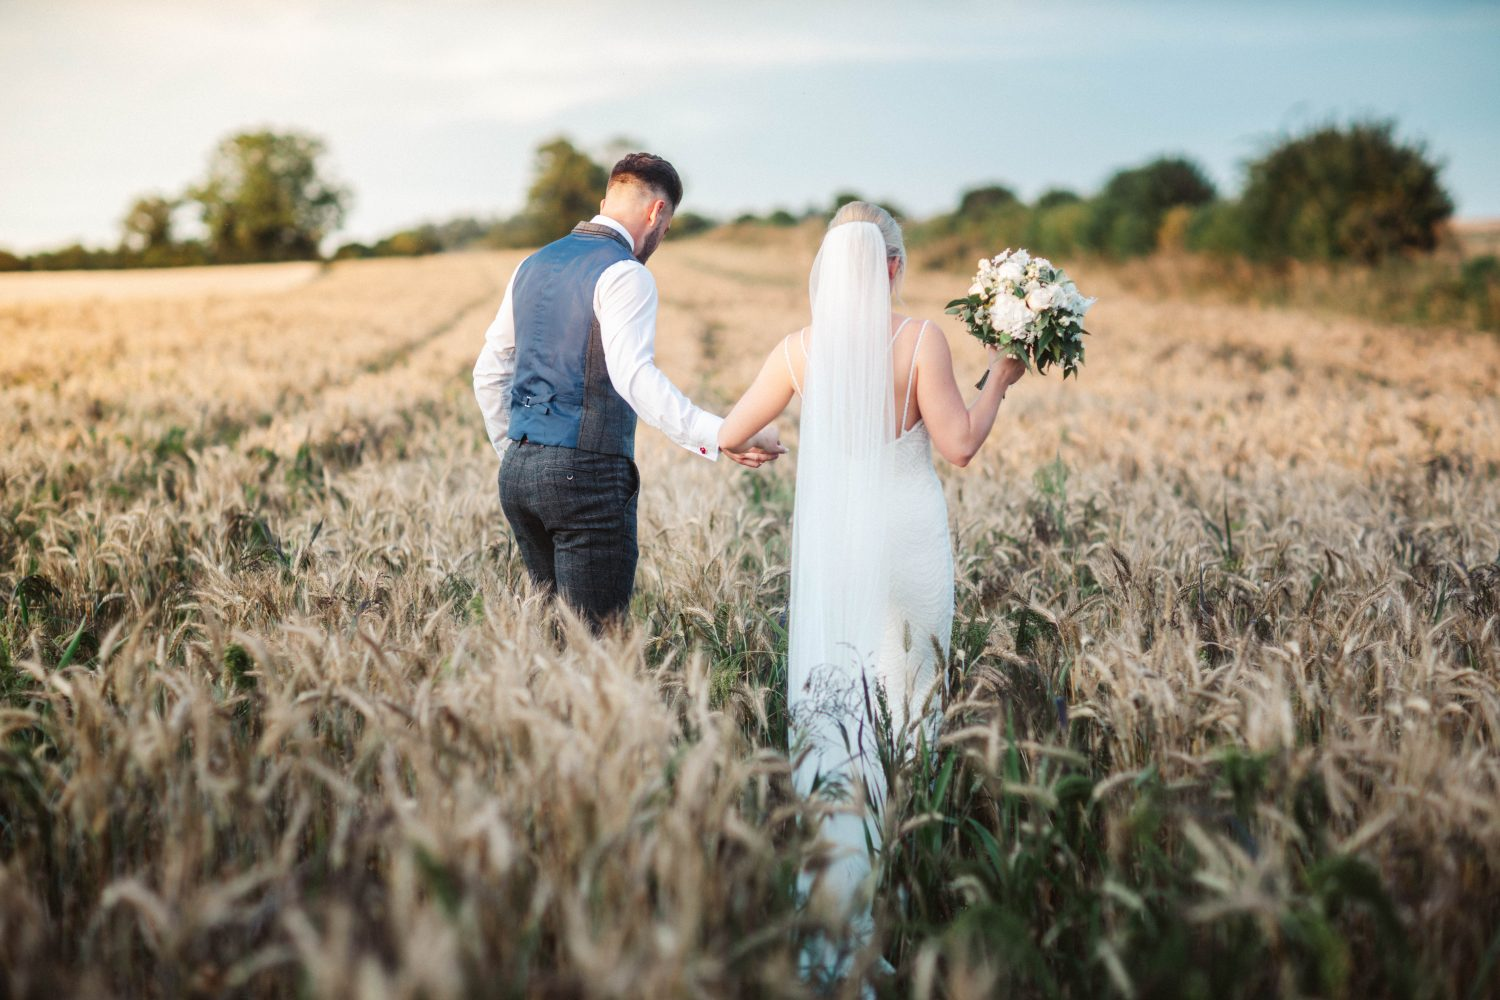 Bride and groom walk in wheat field